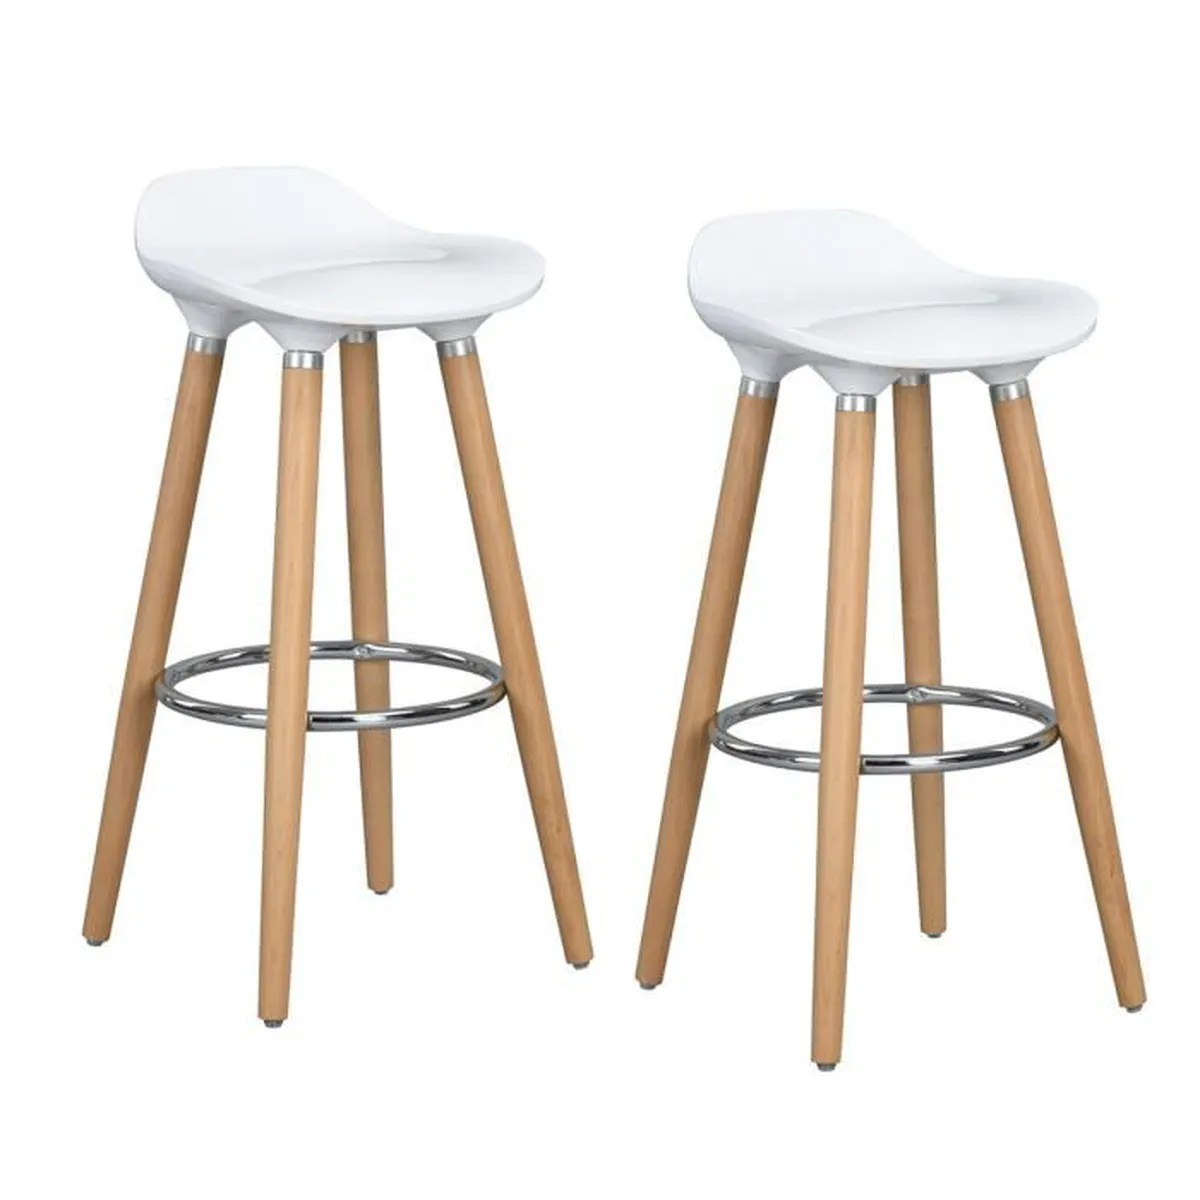 Tabourets De Bar Polycarbonate Furniturer Lot De 2 Tabourets De Bar Bistrot Chaises De